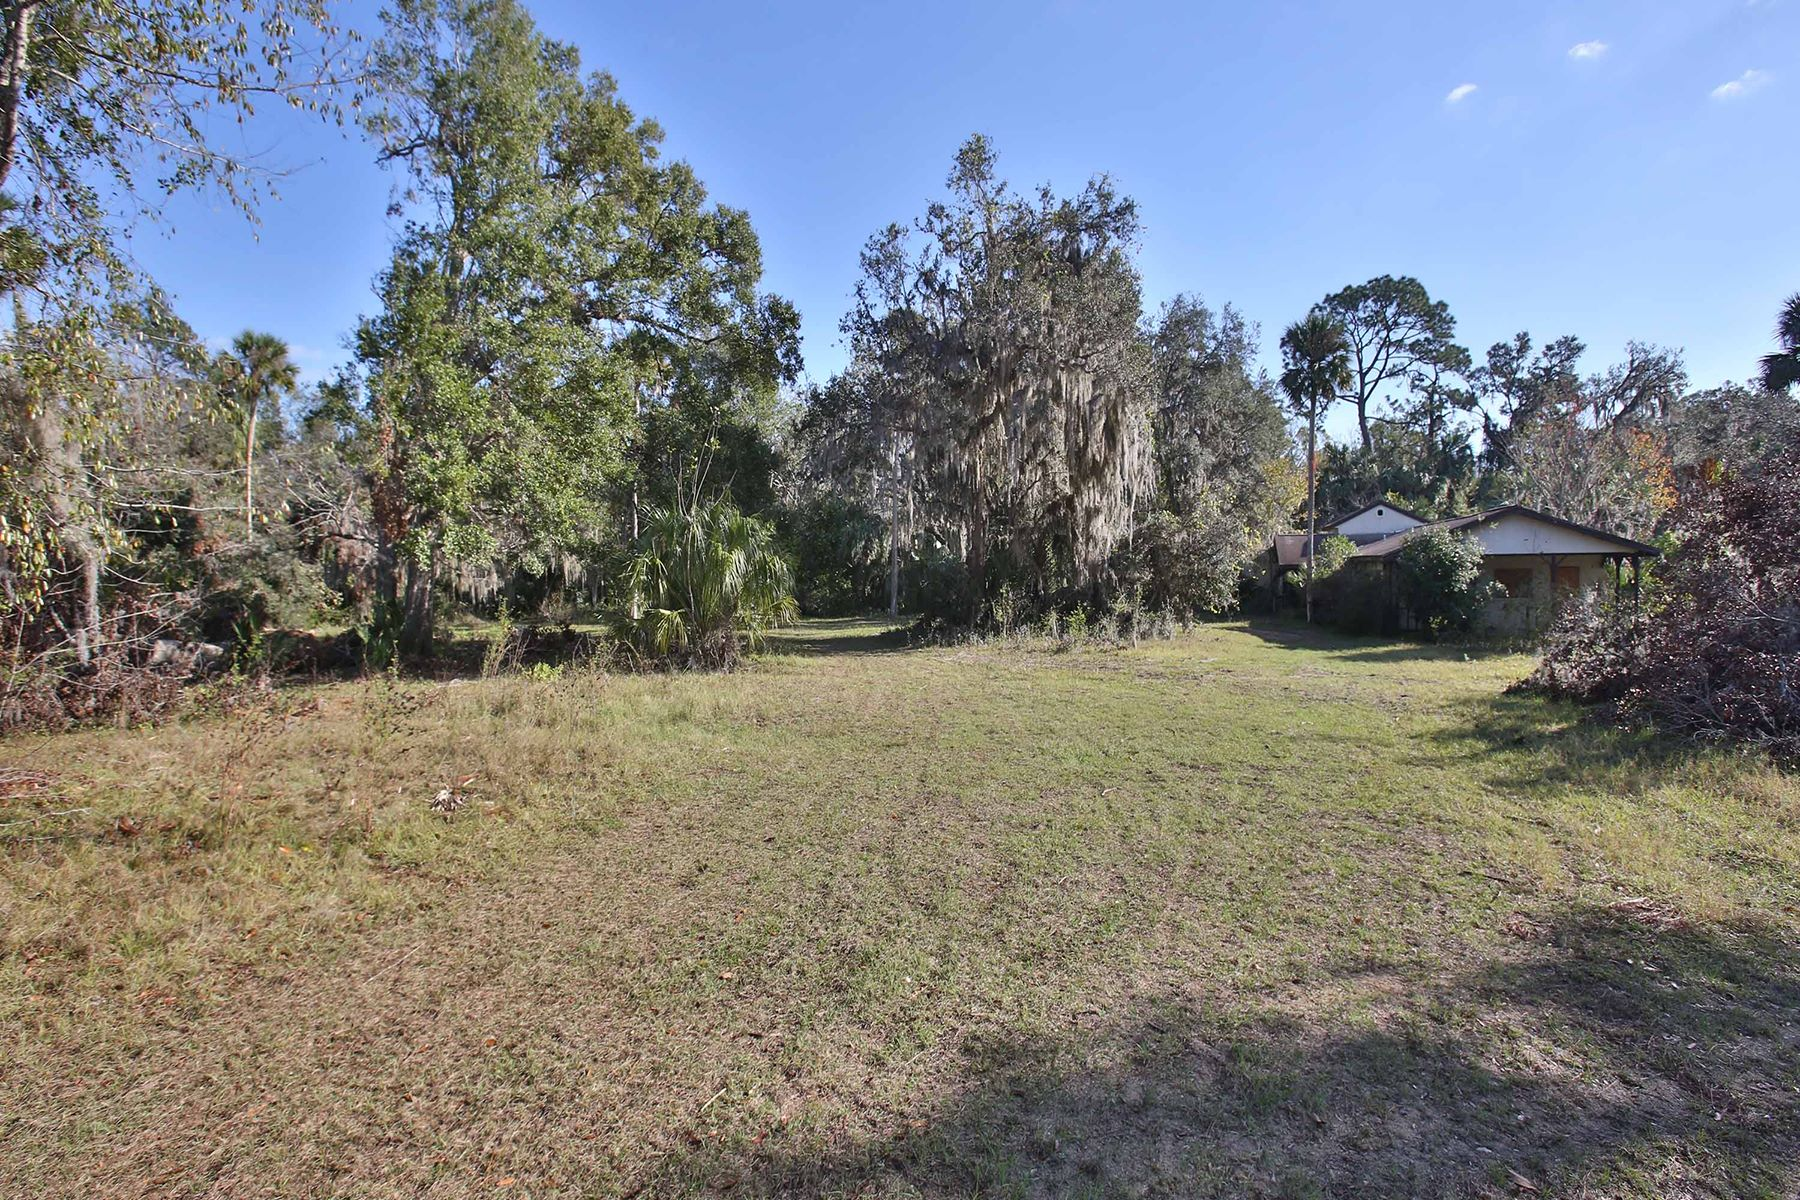 سكني آخر للـ Sale في SPRUCE CREEK AND THE BEACHES 6015 Spruce Creek Rd, Port Orange, Florida, 32127 United States